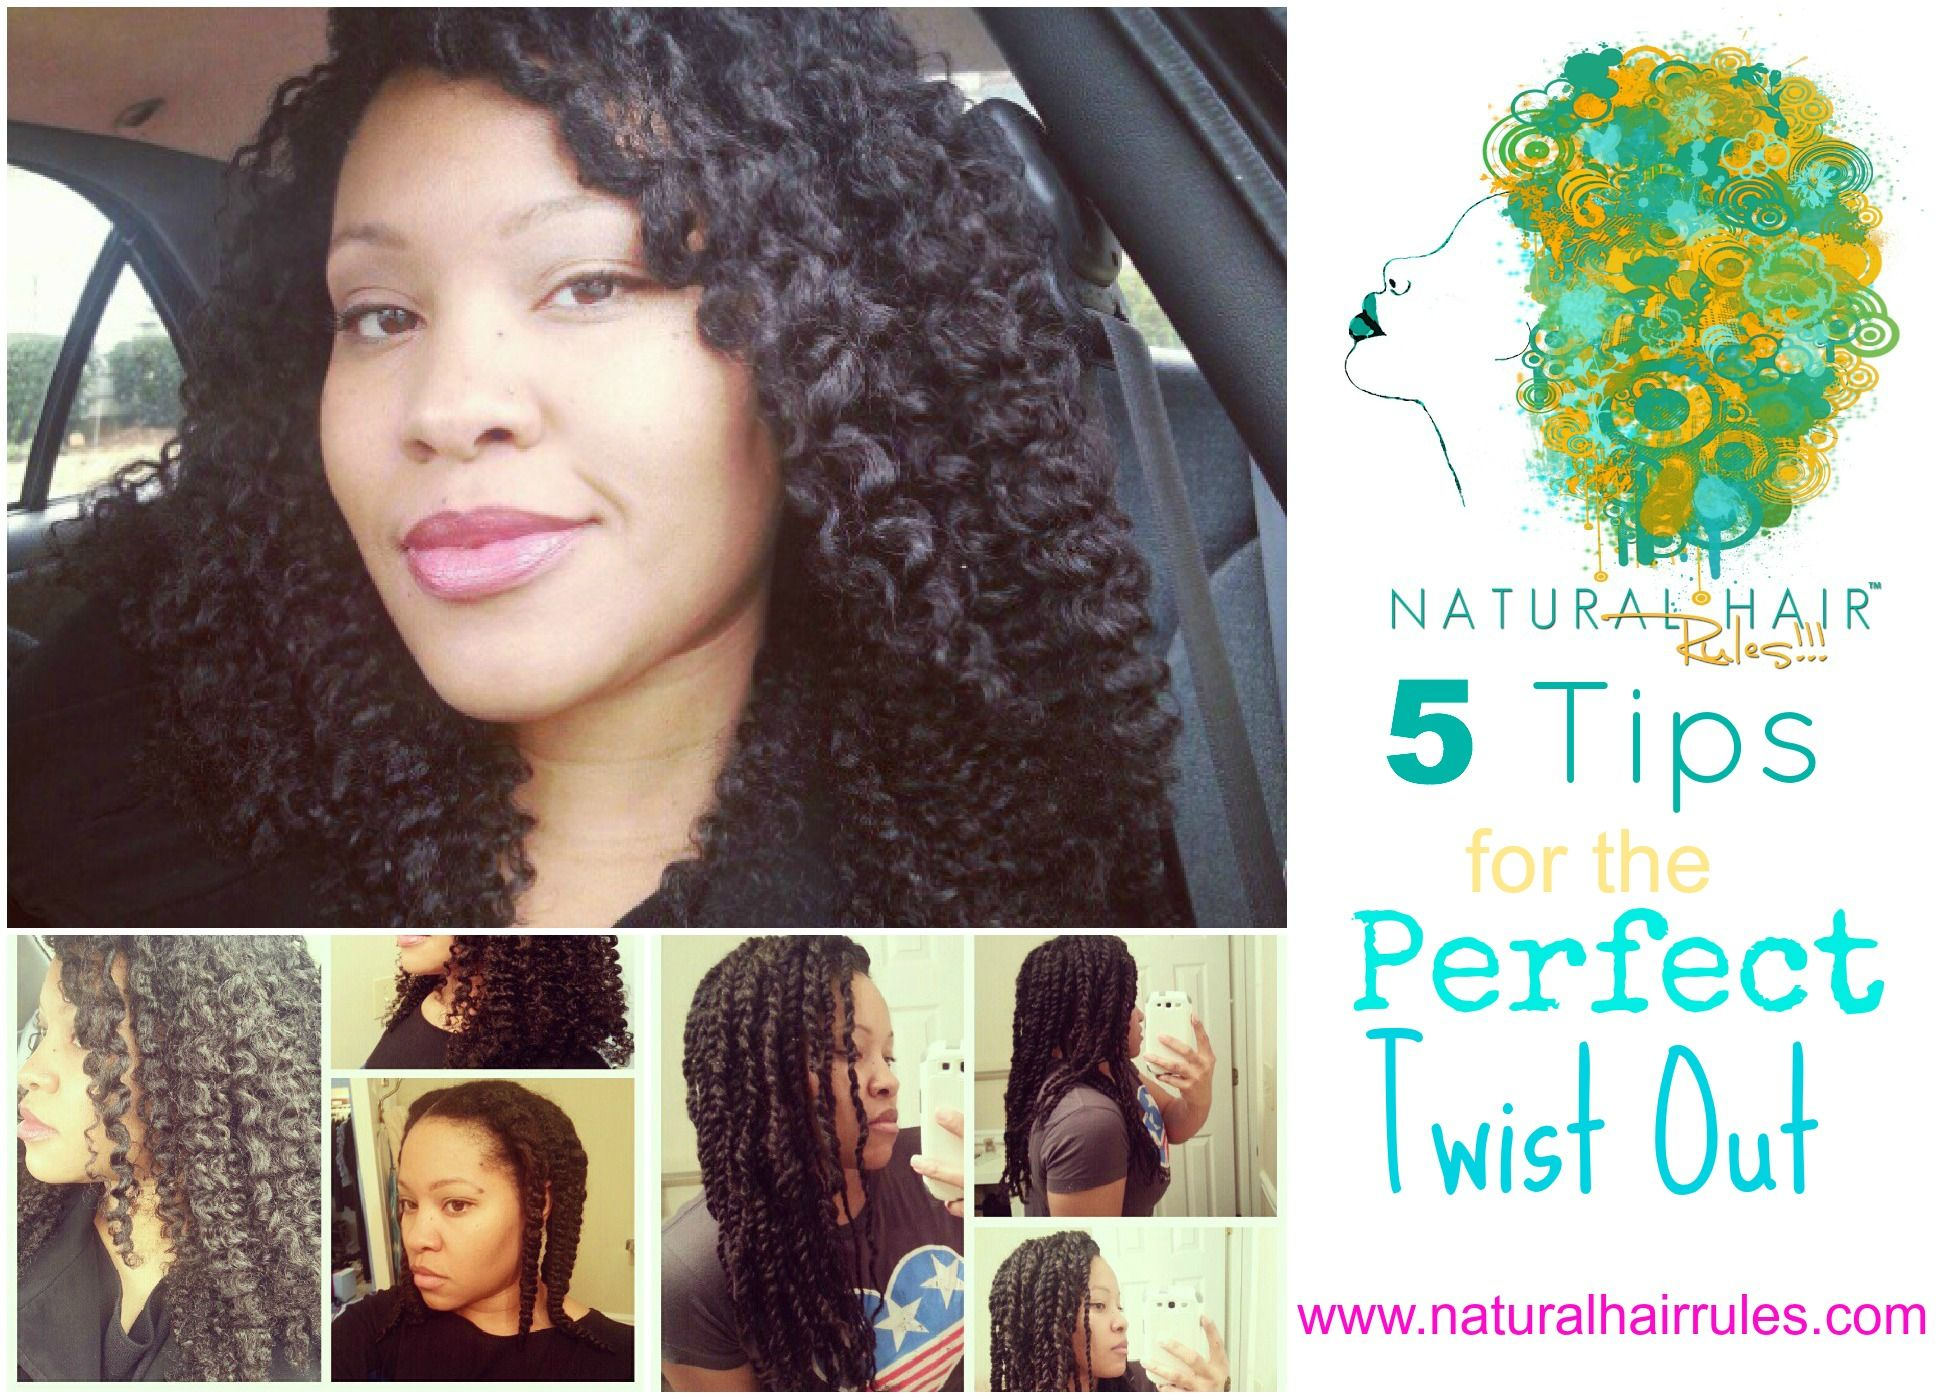 5 Tips for the Perfect Twist Out